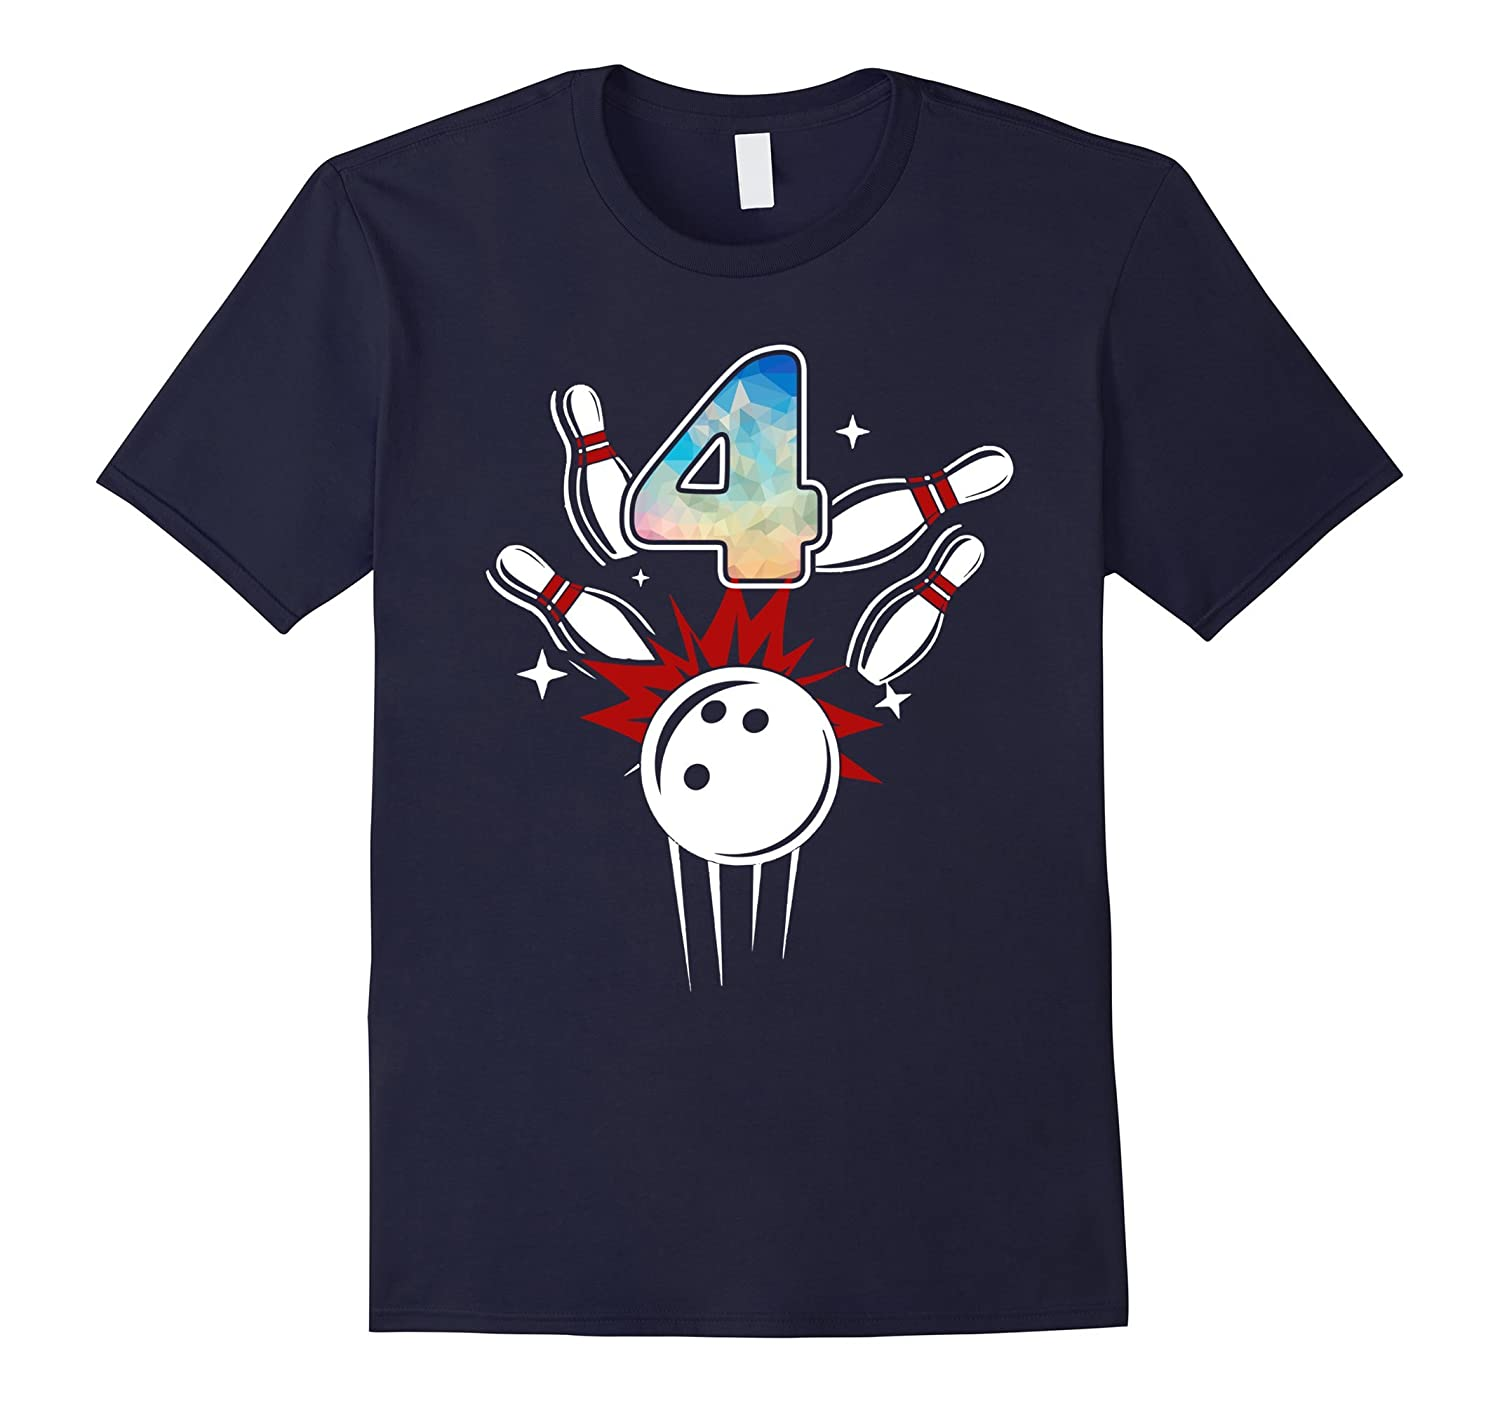 4th Birthday Shirt Kids Happy 4th Birthday 4 Bowling Shirt-Rose